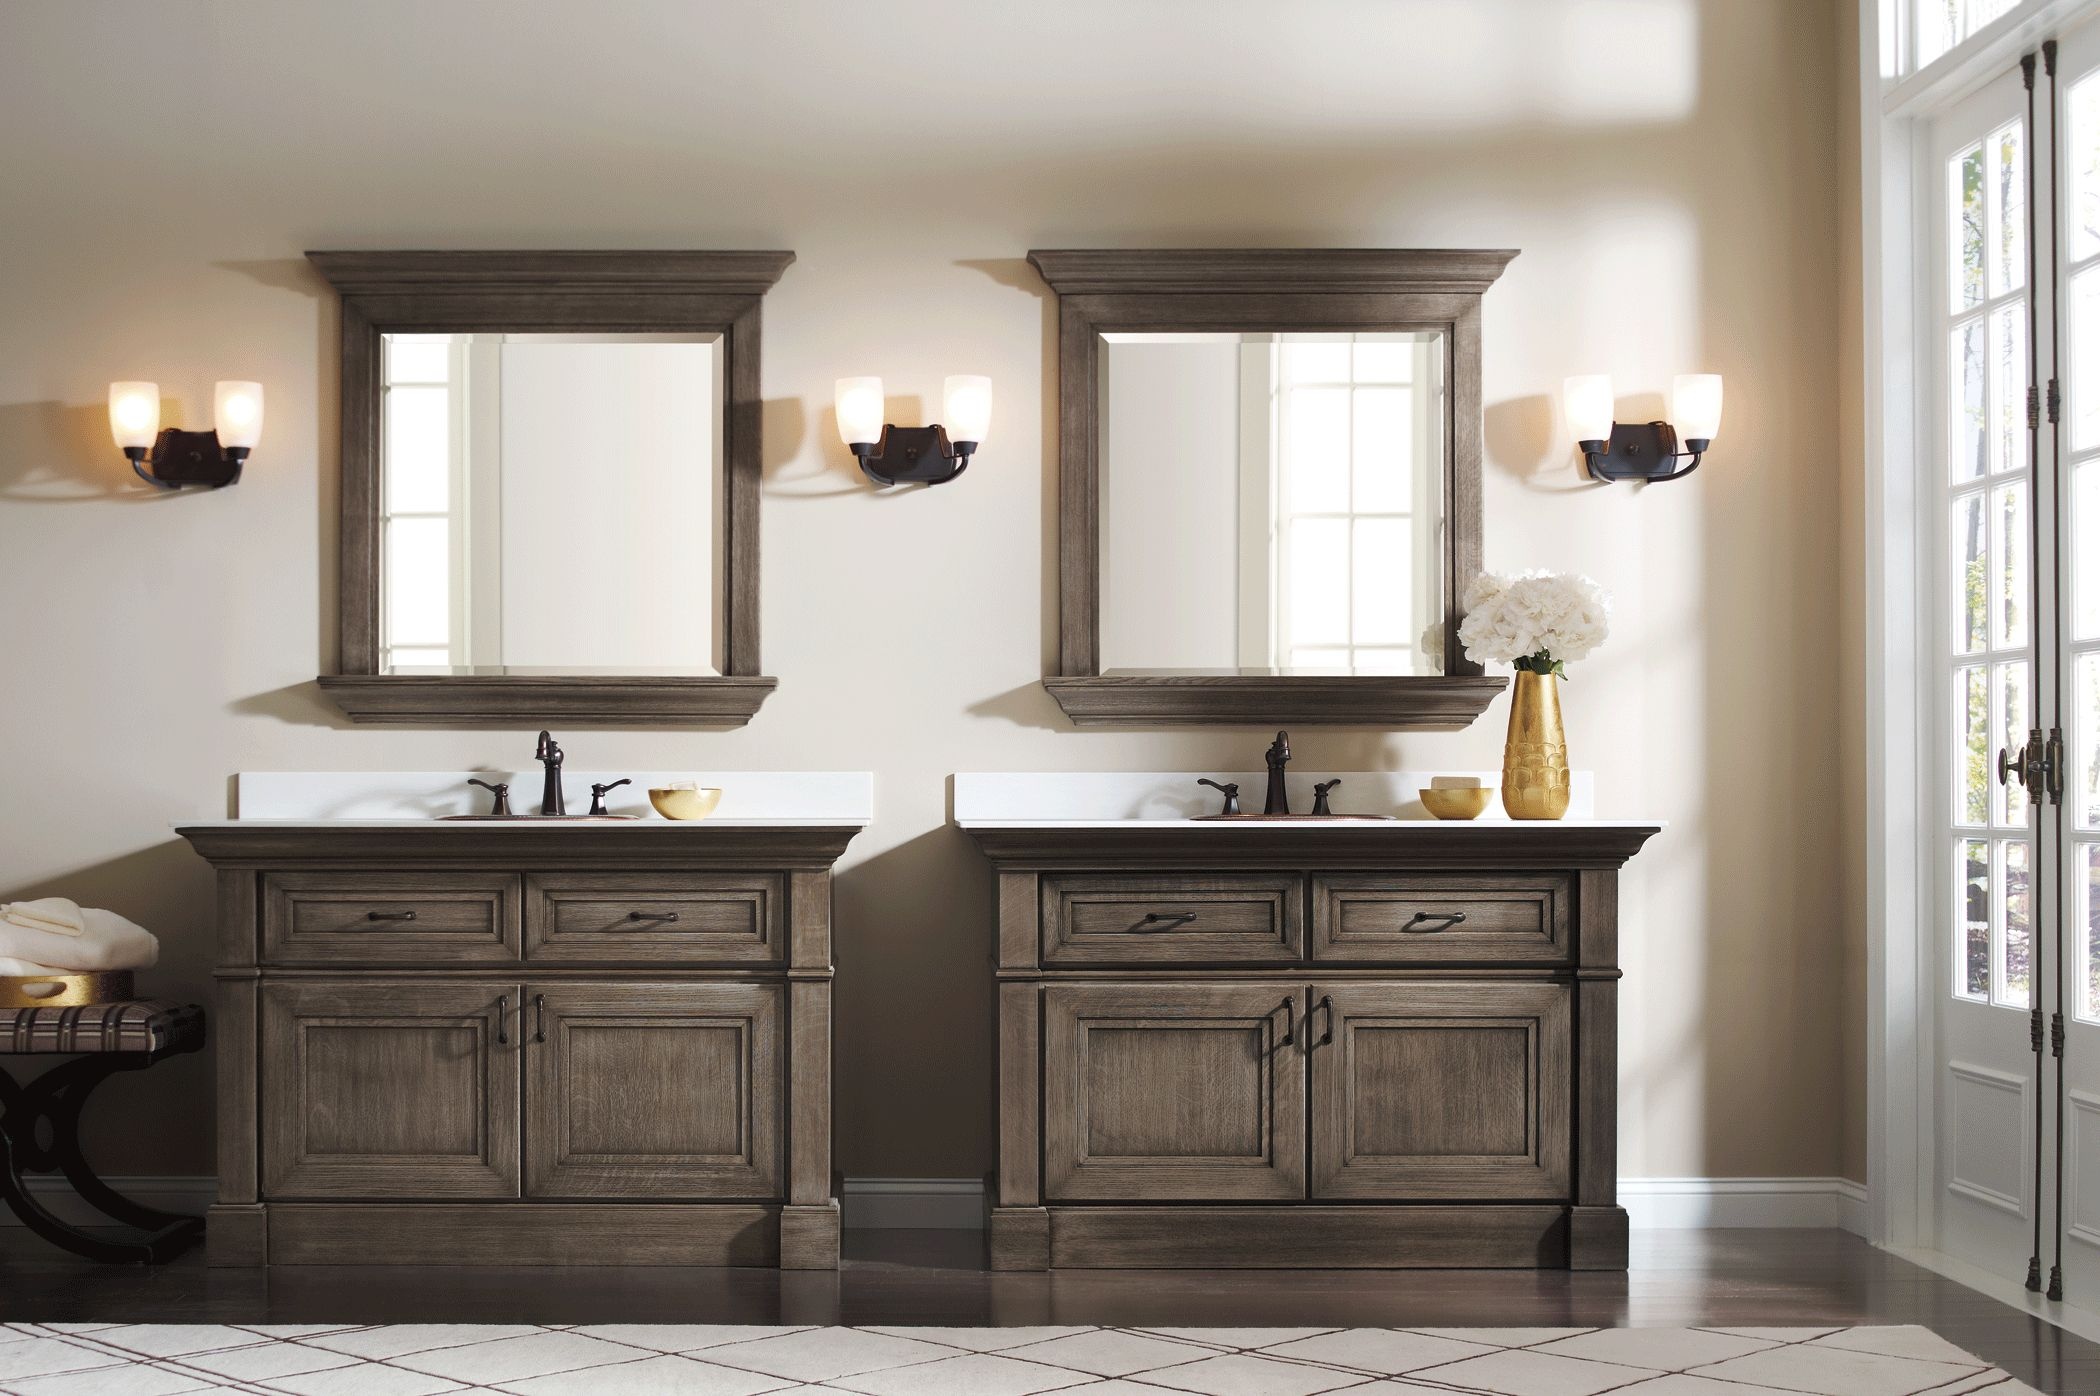 Substantial And Deliciously Architectural Omega S New Plantation Suite Bath Cabinets Bring A Spirit Of Grandeur To Any Bathroom The Dual Stand Alone